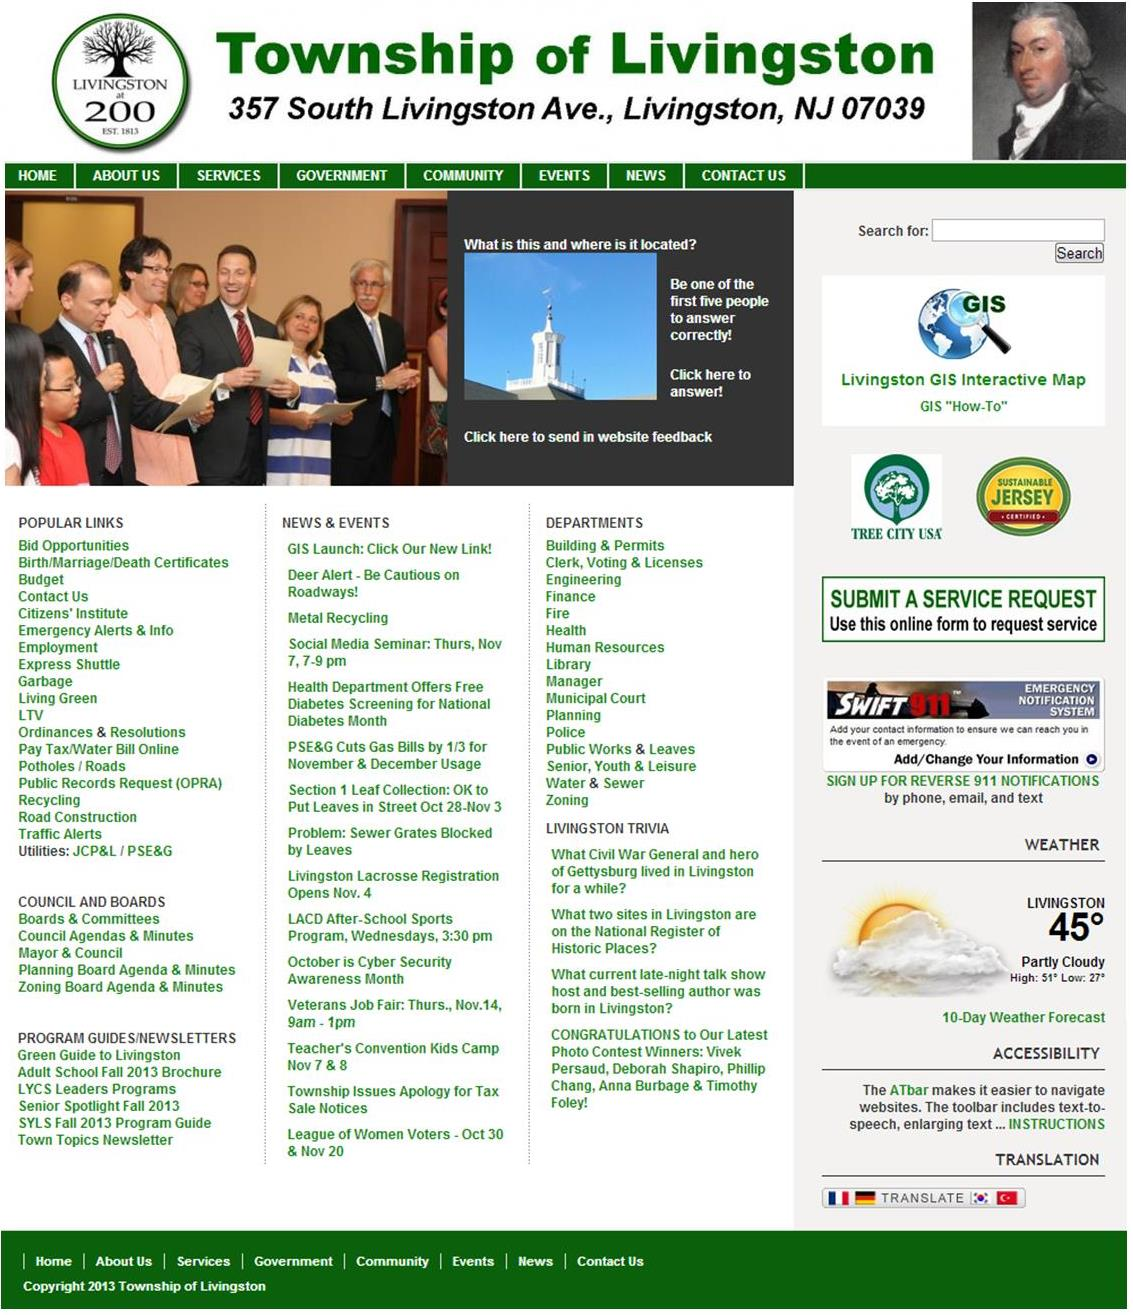 Livingston Township main website